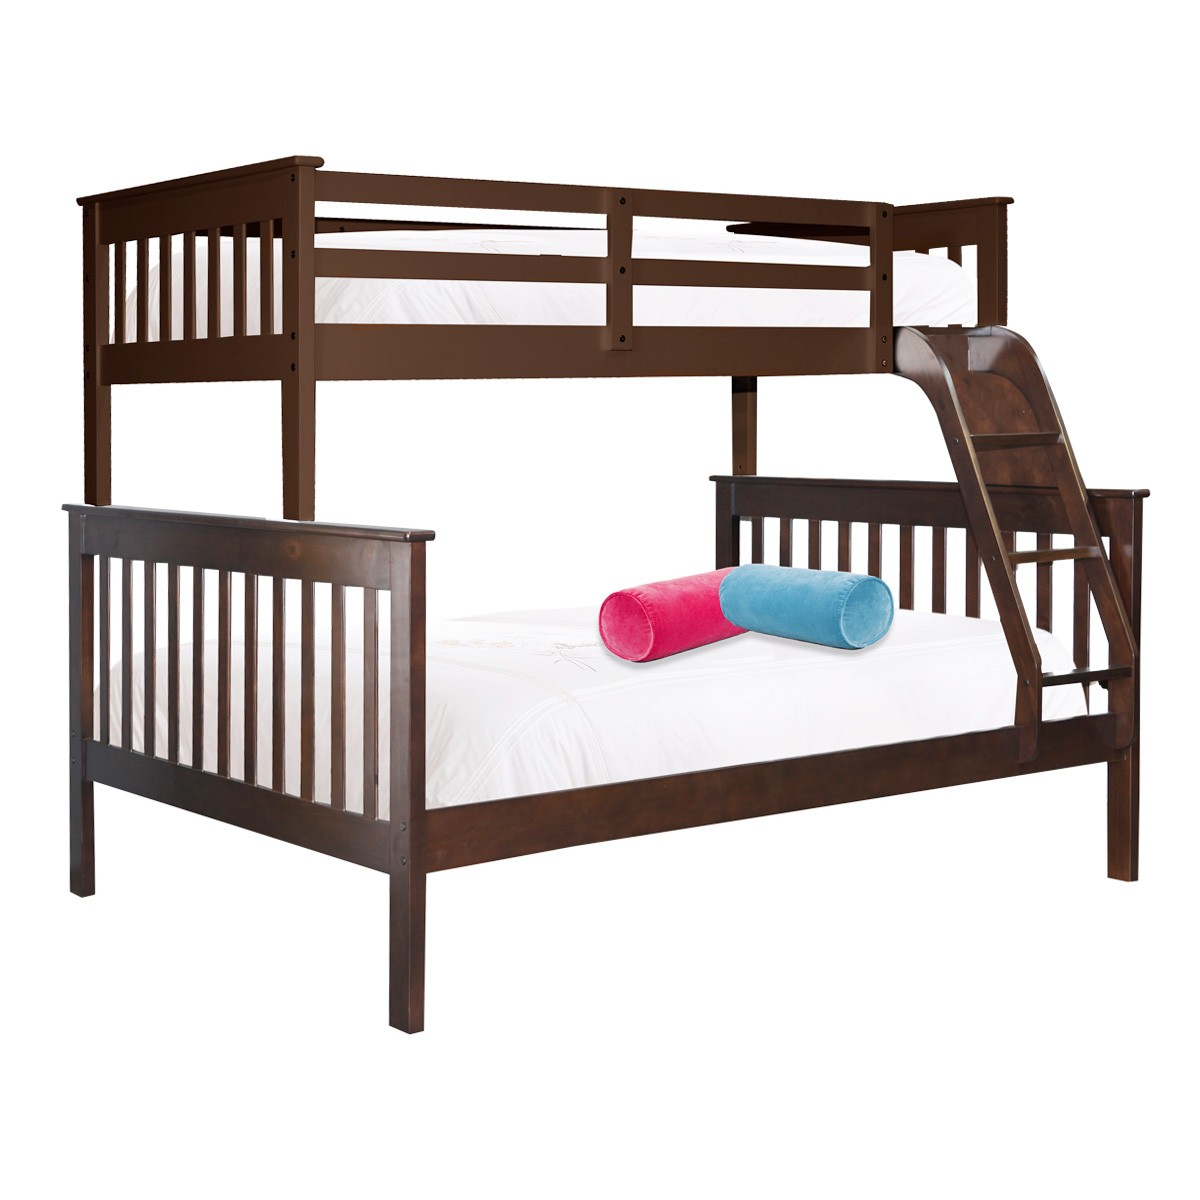 Everest Wooden Bunk Bed, Trio, Cappuccino